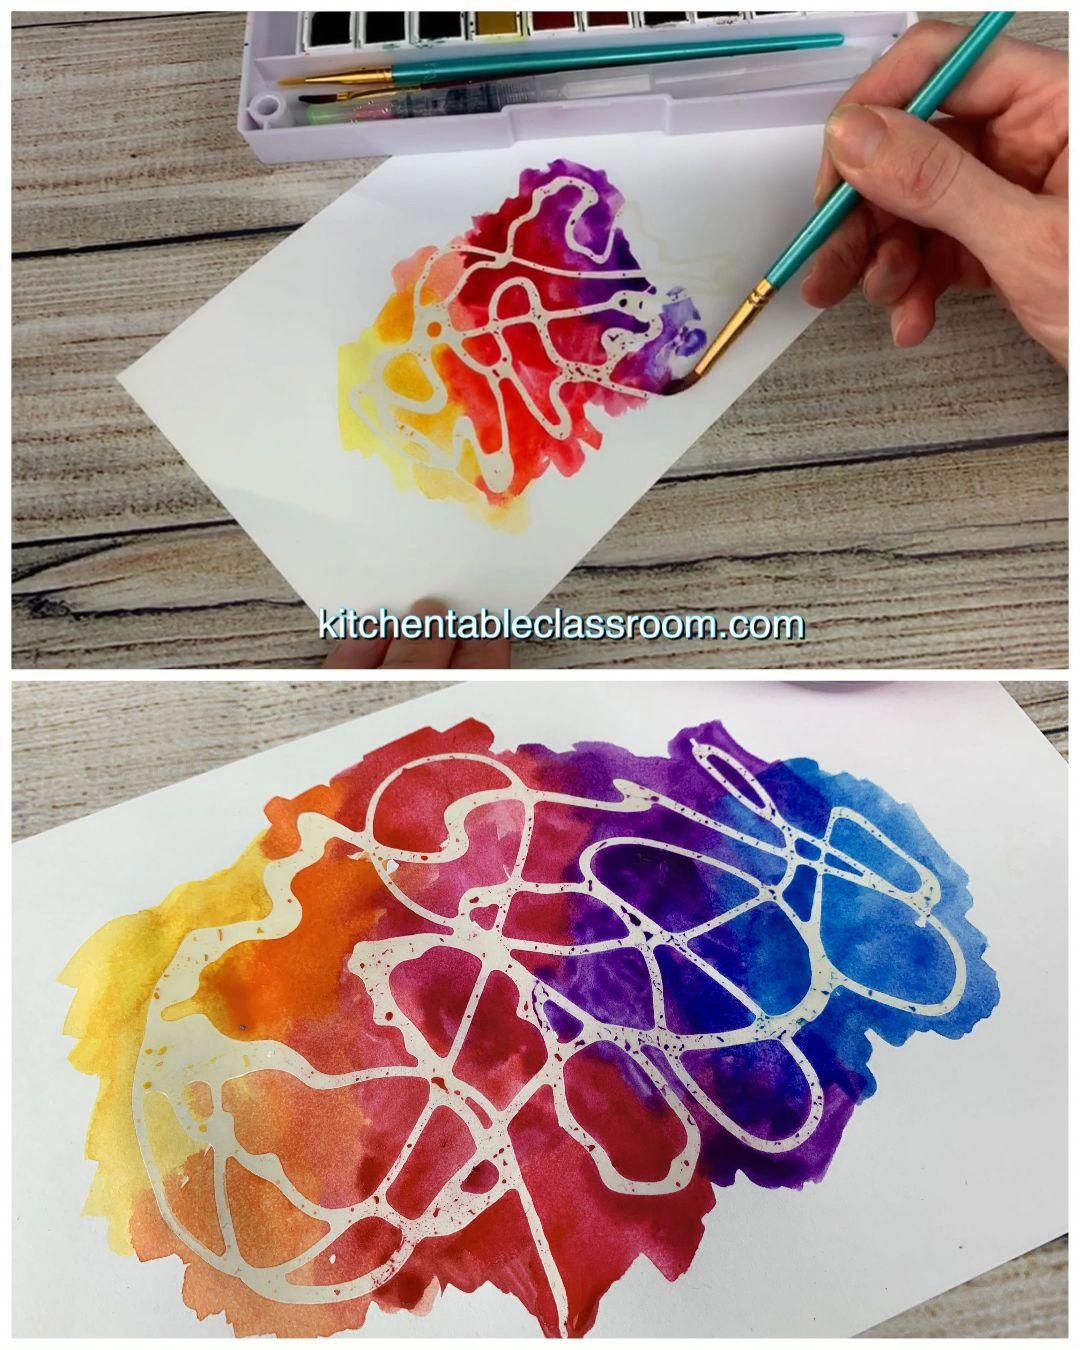 Watercolor For Kids 9 Watercolor Techniques For Any Age The Kitchen Table Classroom Kids Watercolor Art For Kids Watercolor Techniques